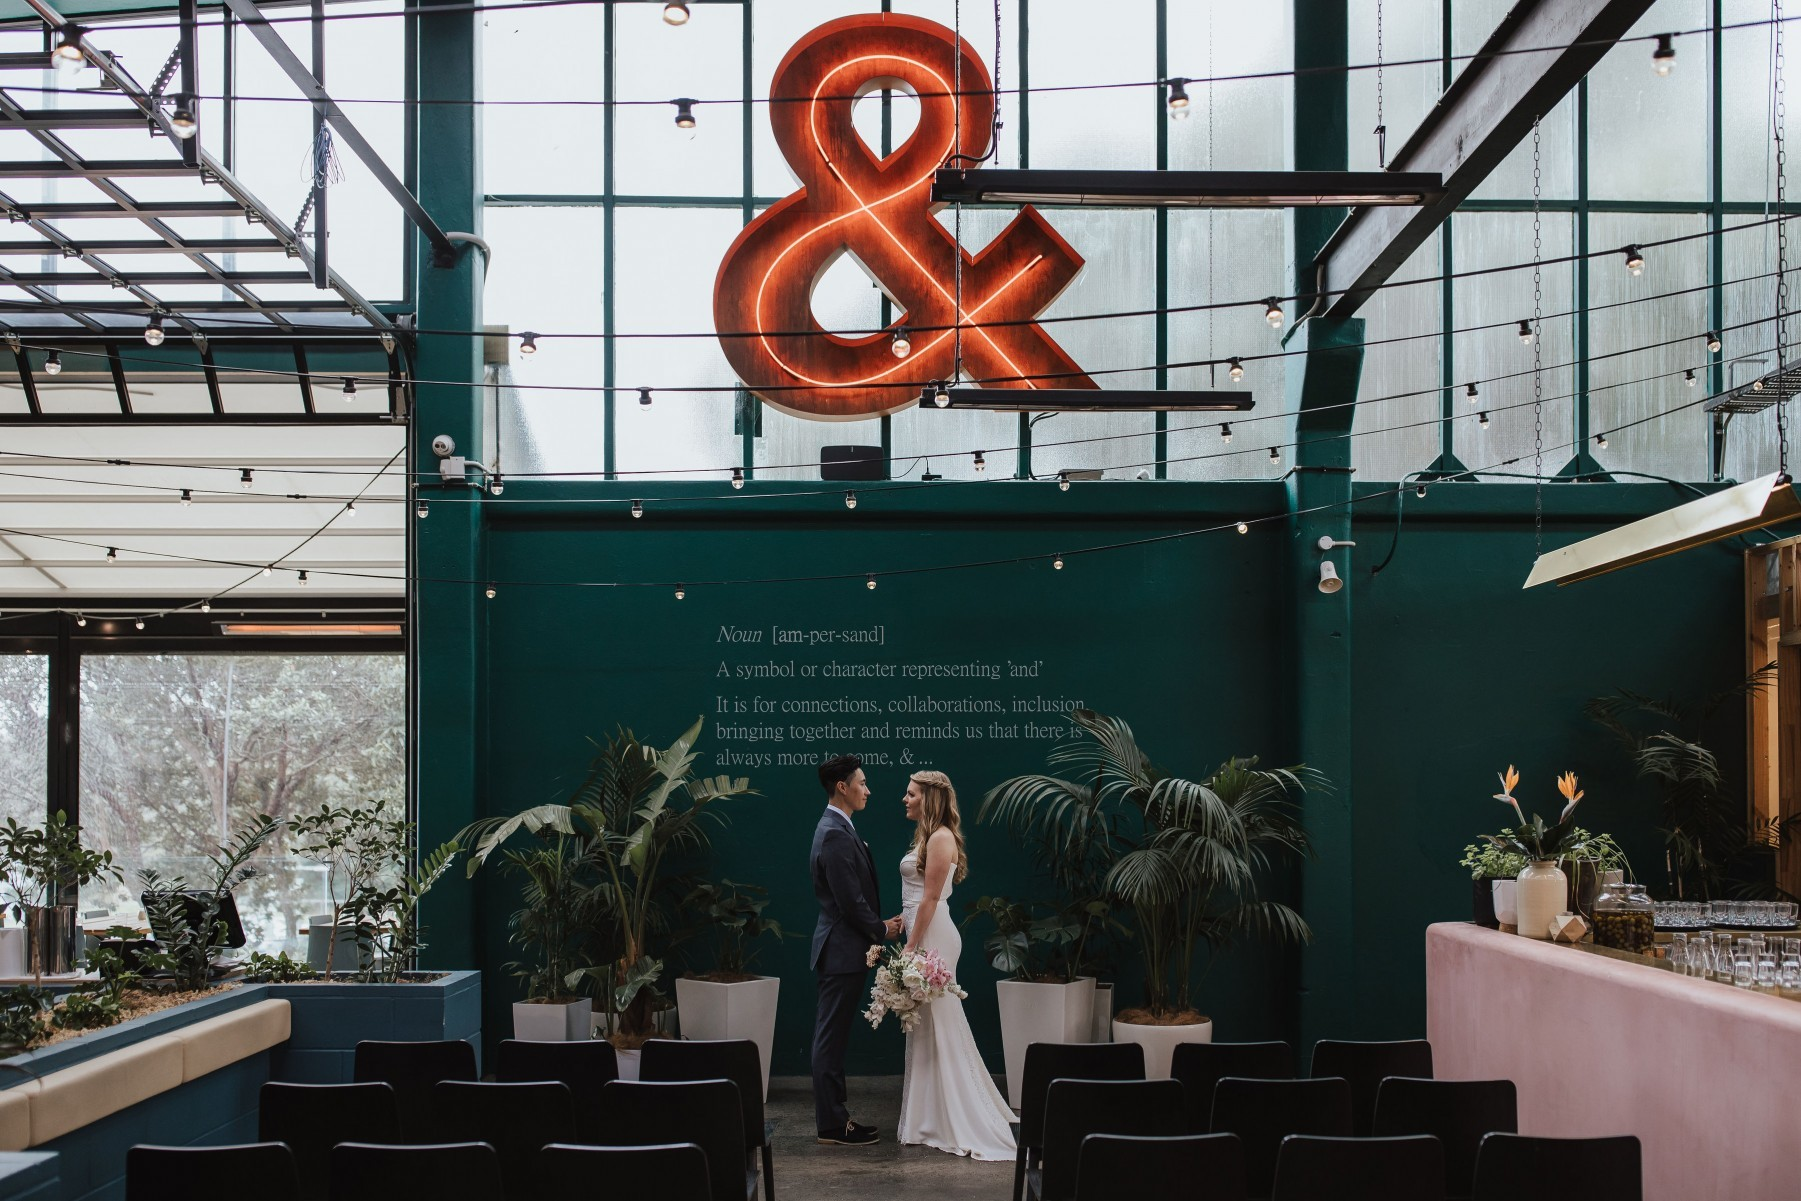 ampersand eatery, auckland, venue, wedding, weddings, function, space, event, nz